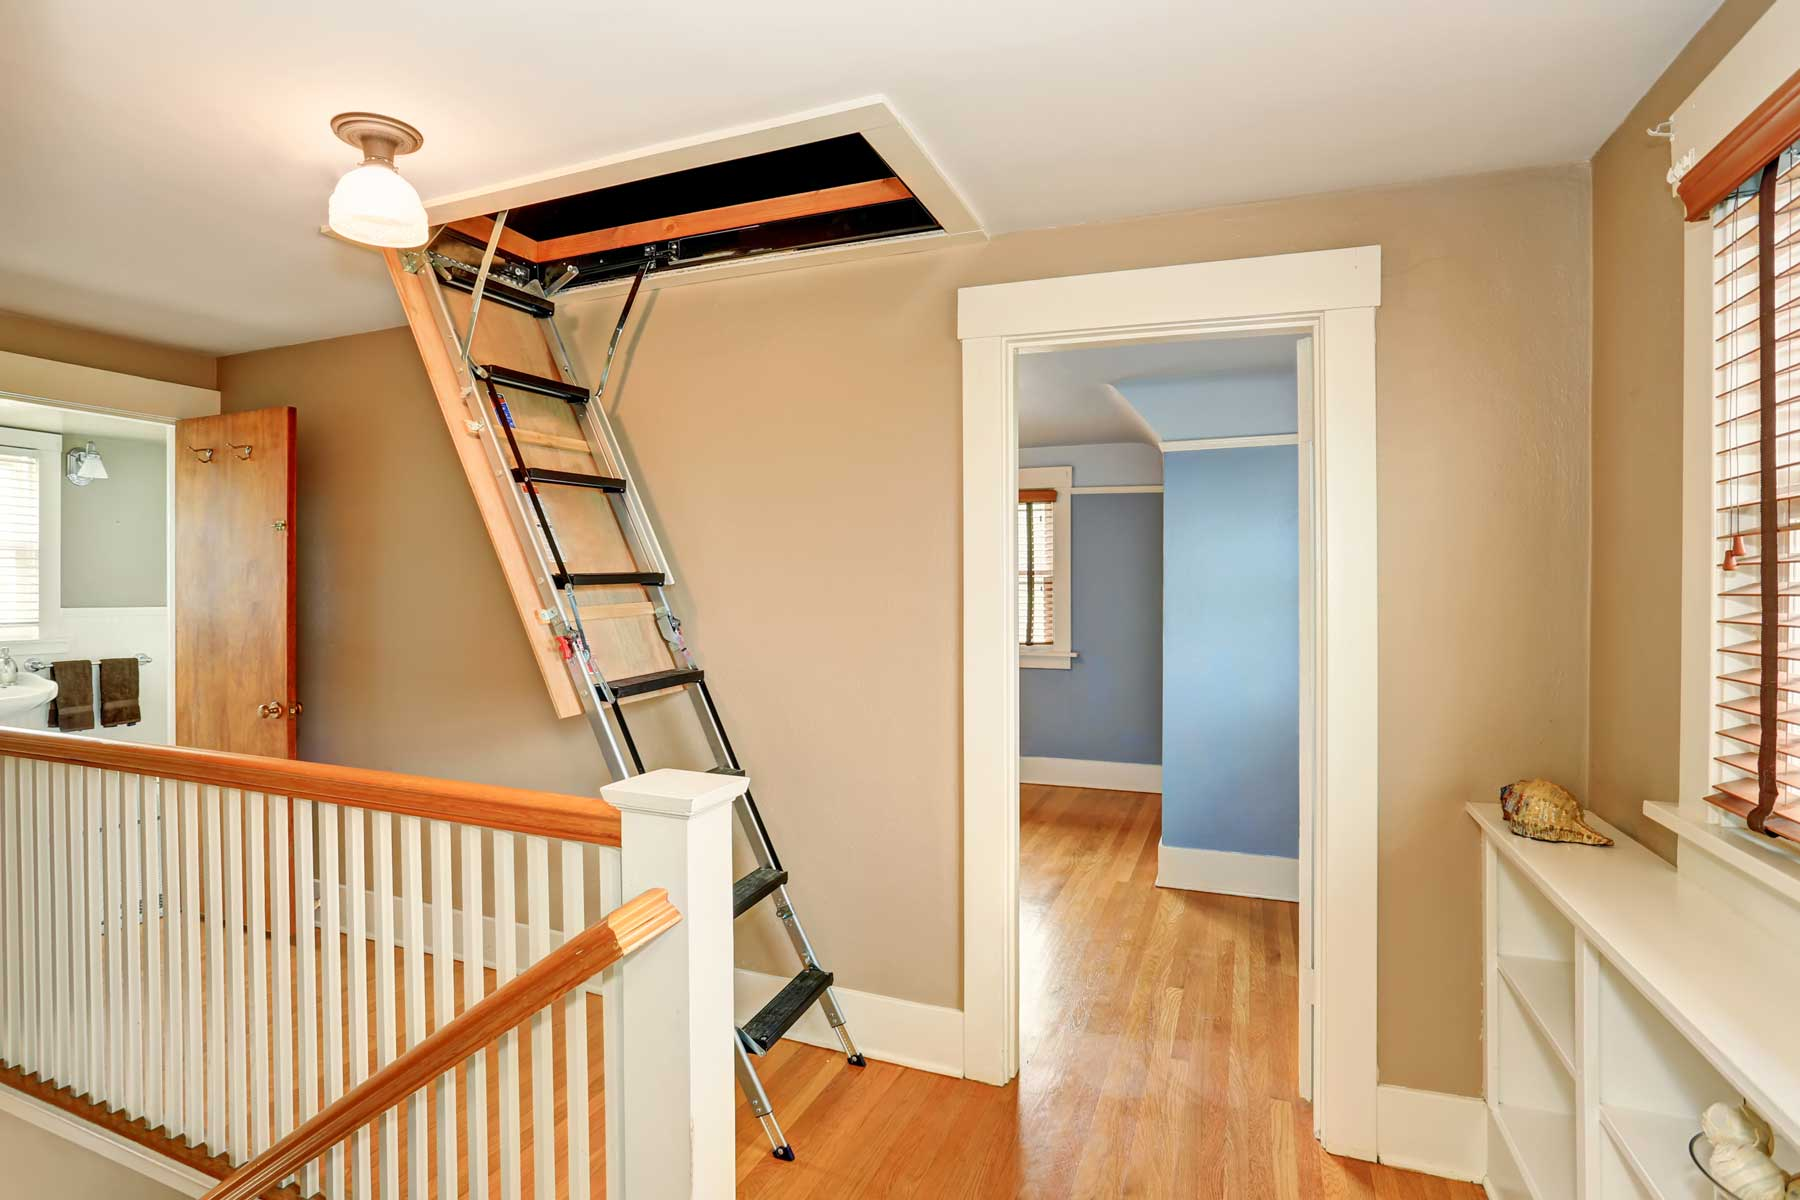 Photo of attic stairs